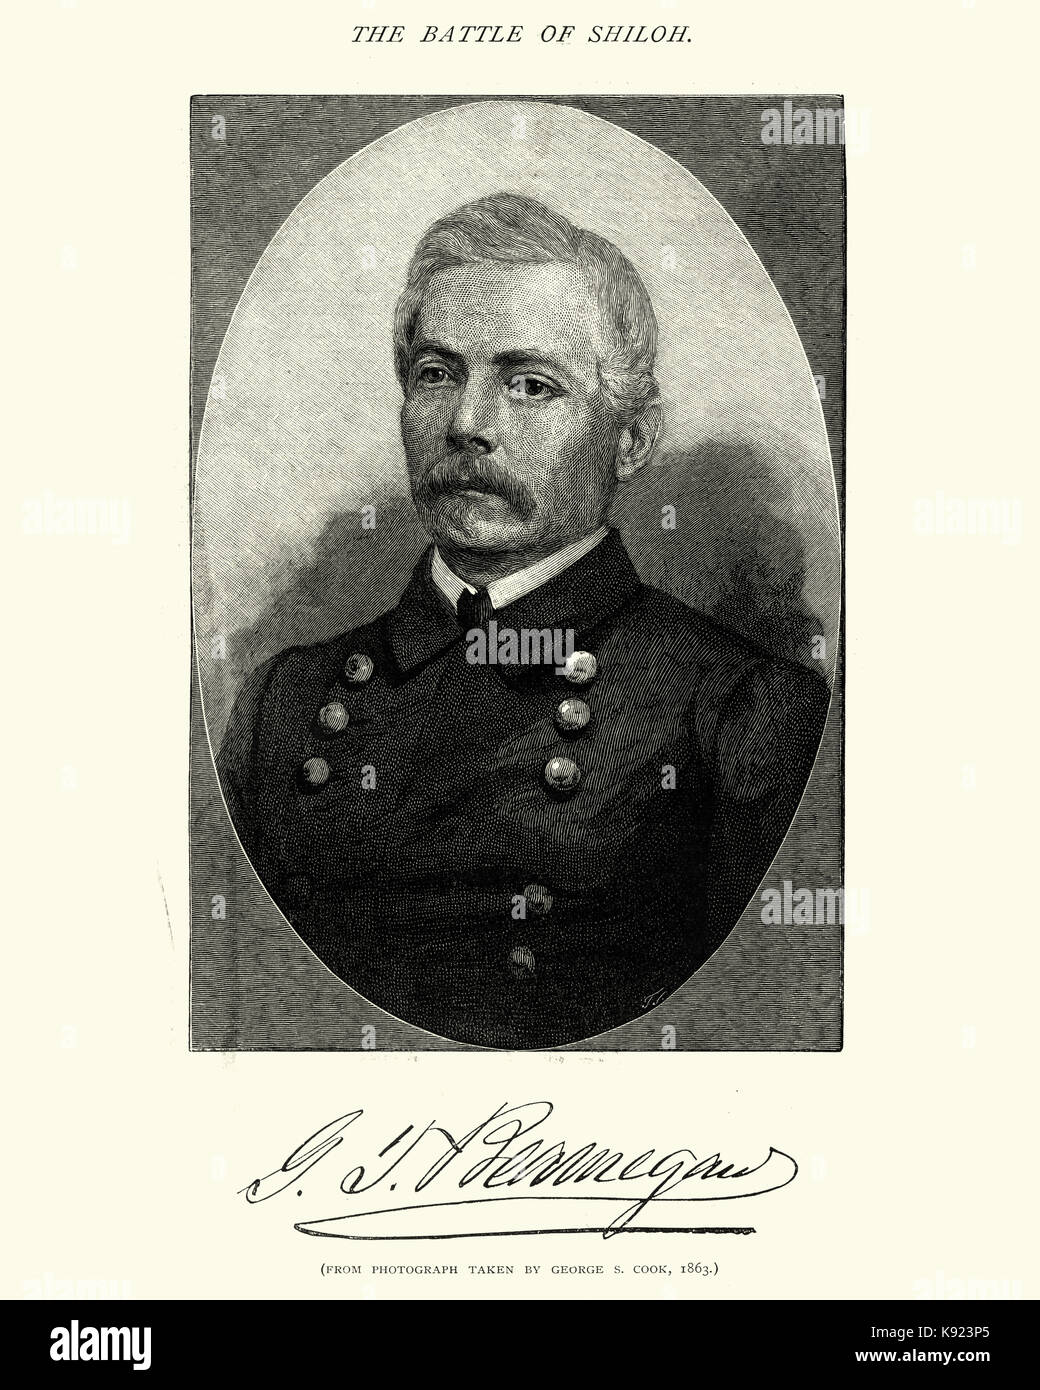 pierre gustave toutant beauregard essay Pierre gustave toutant-beauregard (may 28, 1818 – february 20, 1893) was an american military officer who was the first prominent general of the confederate states army during the american civil war.